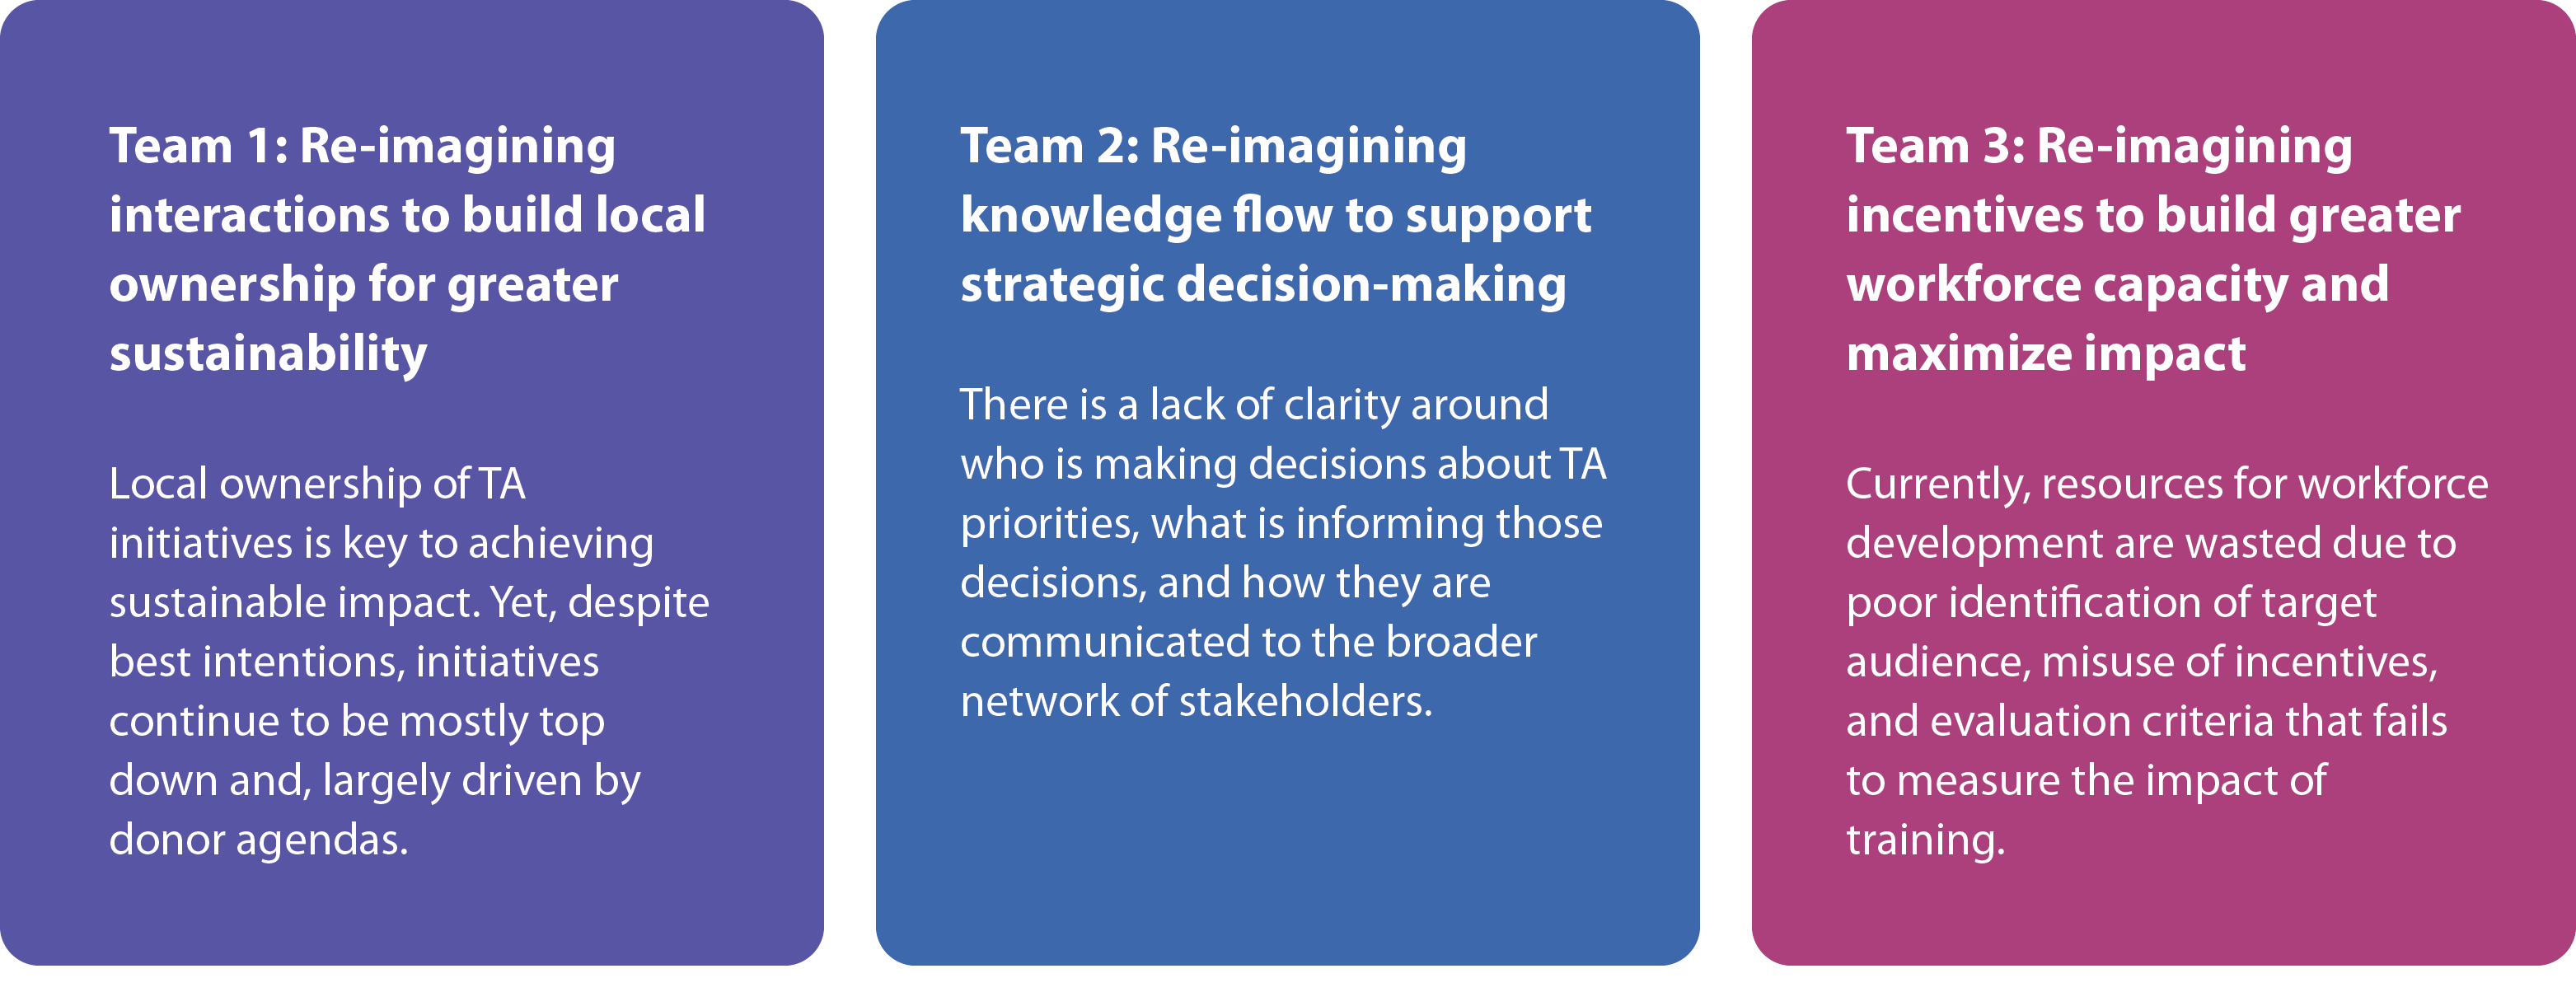 Team 1: re-imagining interaction to build local ownership for greater sustainability; Team 2: Re-imagining knowledge flow to support strategic decision-making; Team 3: Re-imagining incentives to build greater workforce capacity and maximize impact